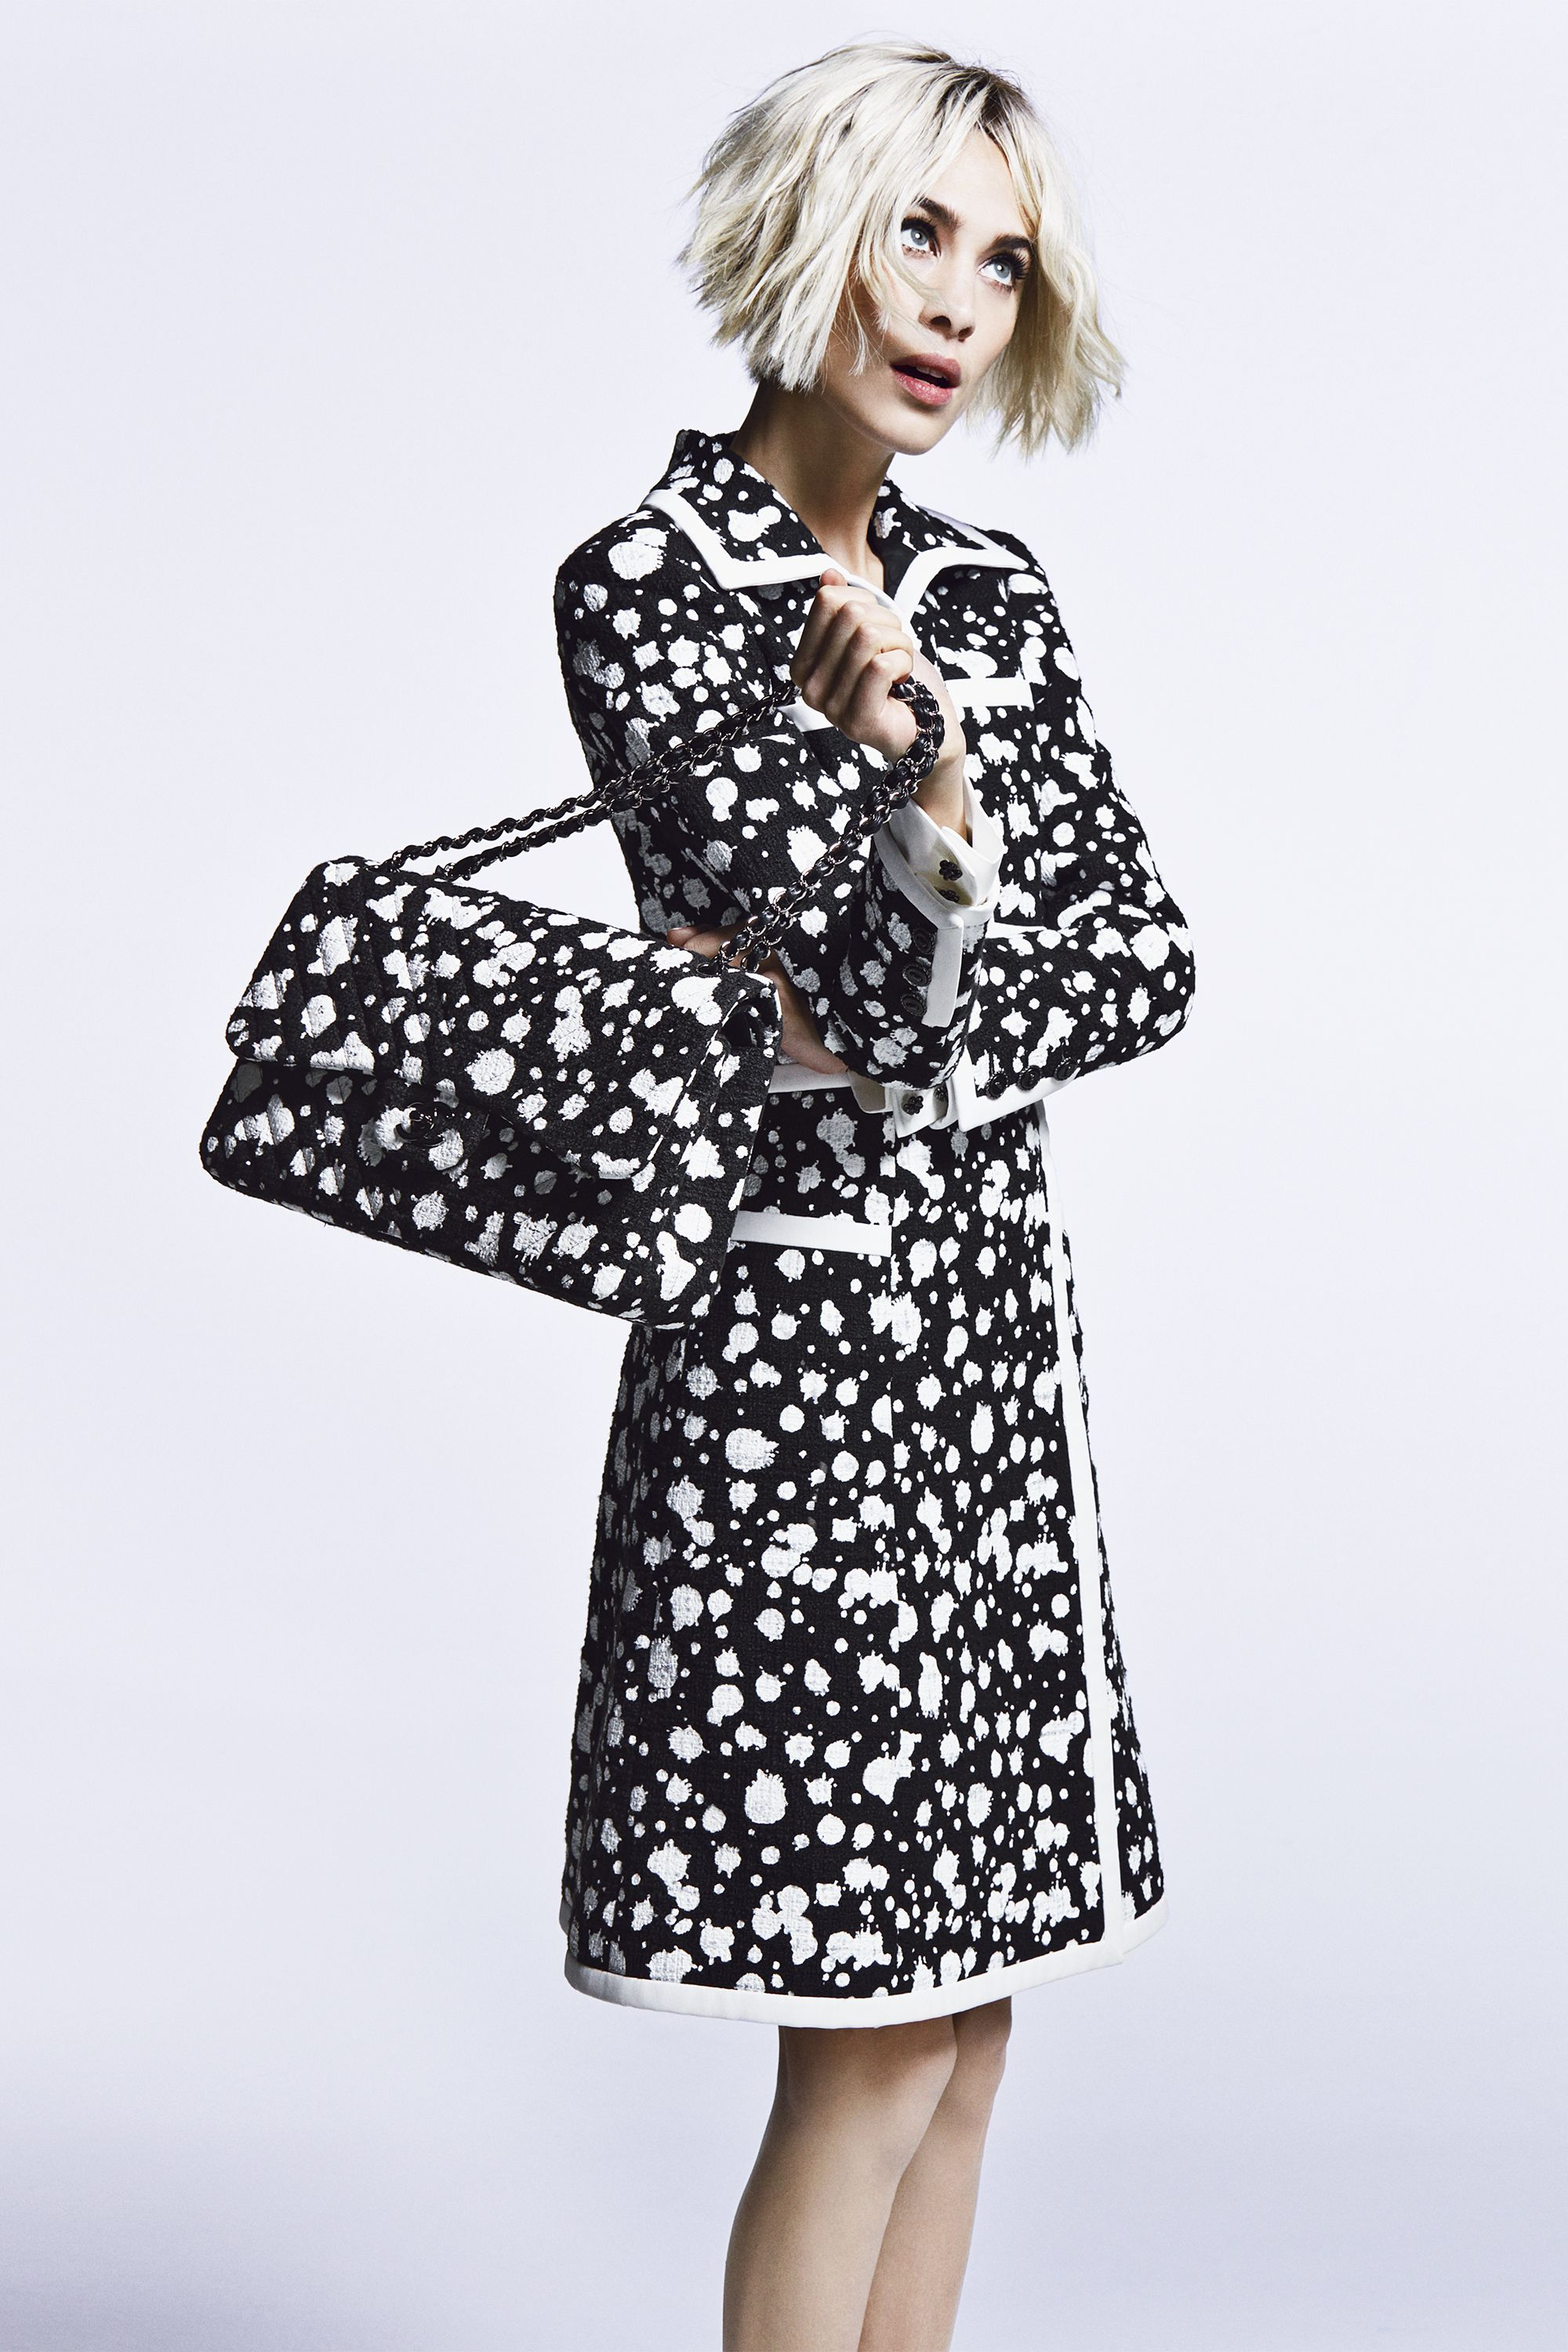 """<strong>Chanel</strong> jacket, $6,200,and skirt, $2,500,<a href=""""http://shop.nordstrom.com/"""">Nordstrom</a>, 800-695-8000; <strong>Chanel</strong> bag, $4,200,800-550-0005."""